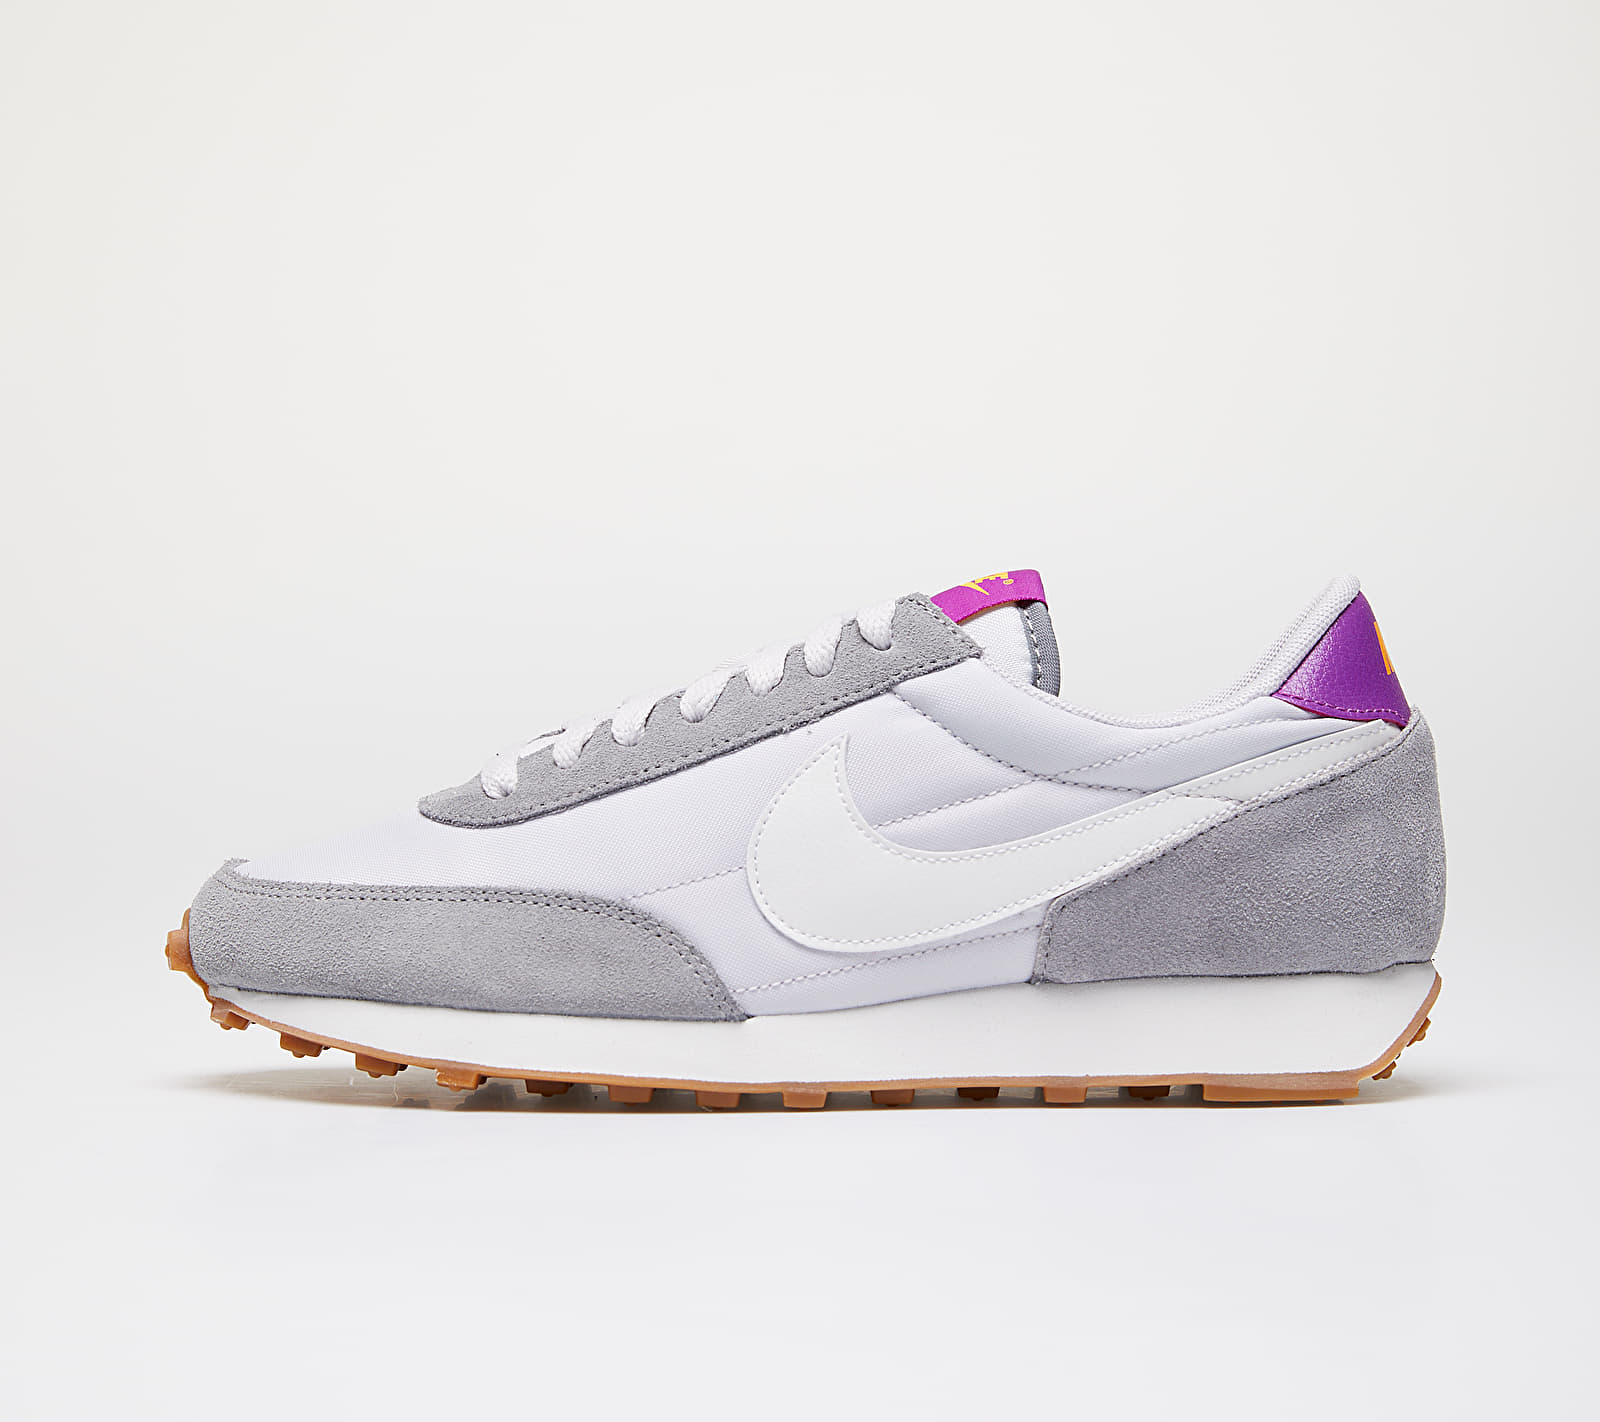 Nike W Dbreak Particle Grey/ Summit White-Vast Grey, Gray